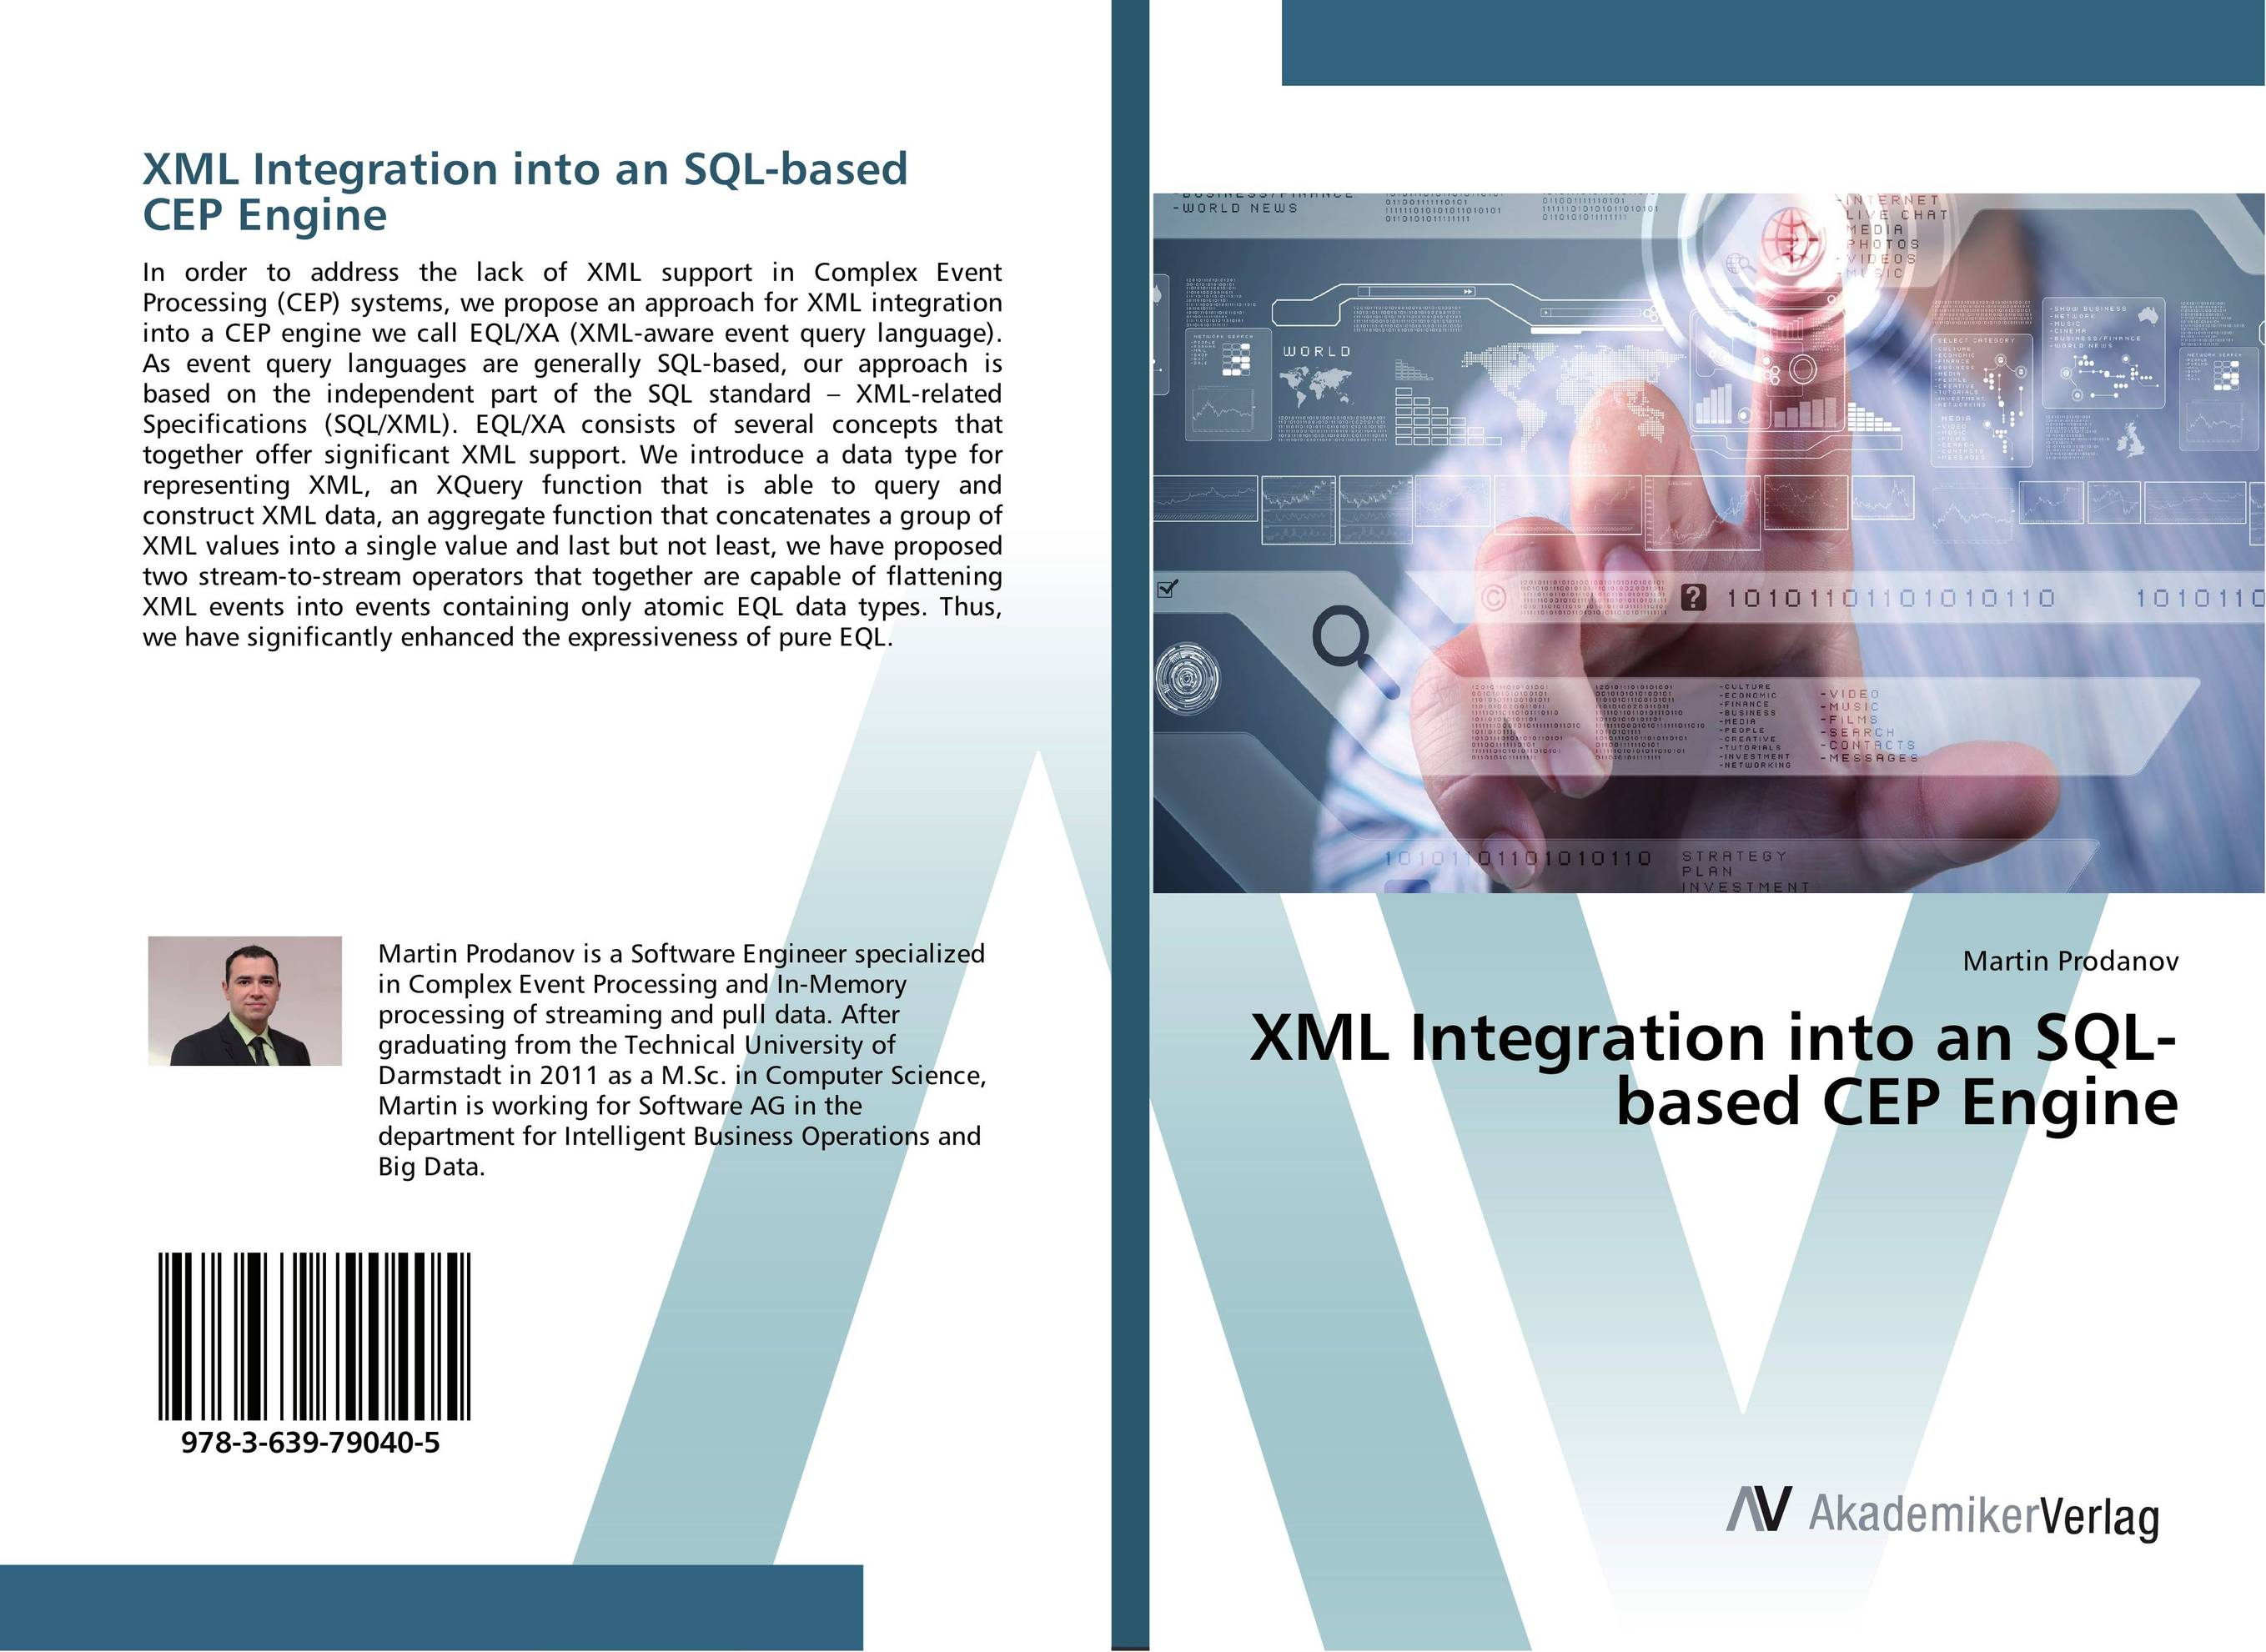 XML Integration into an SQL-based CEP Engine sitemap 155 xml